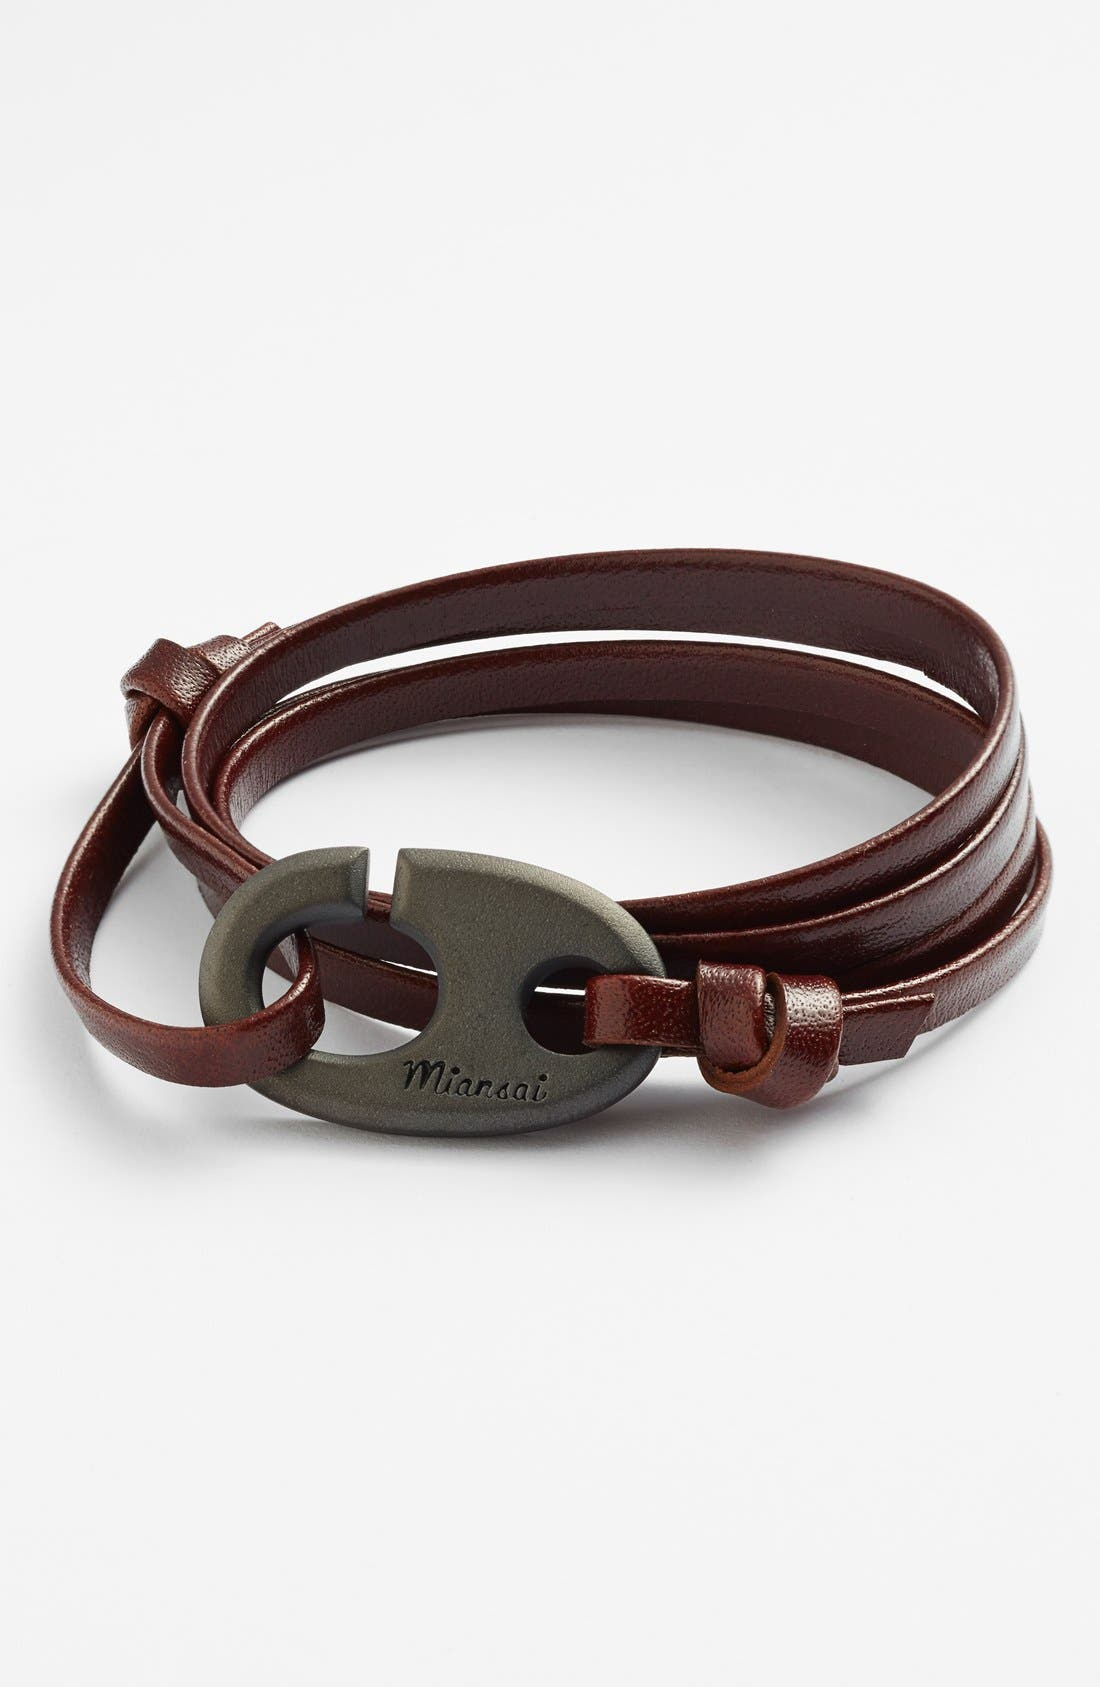 Alternate Image 1 Selected - Miansai Brummel Hook Leather Bracelet